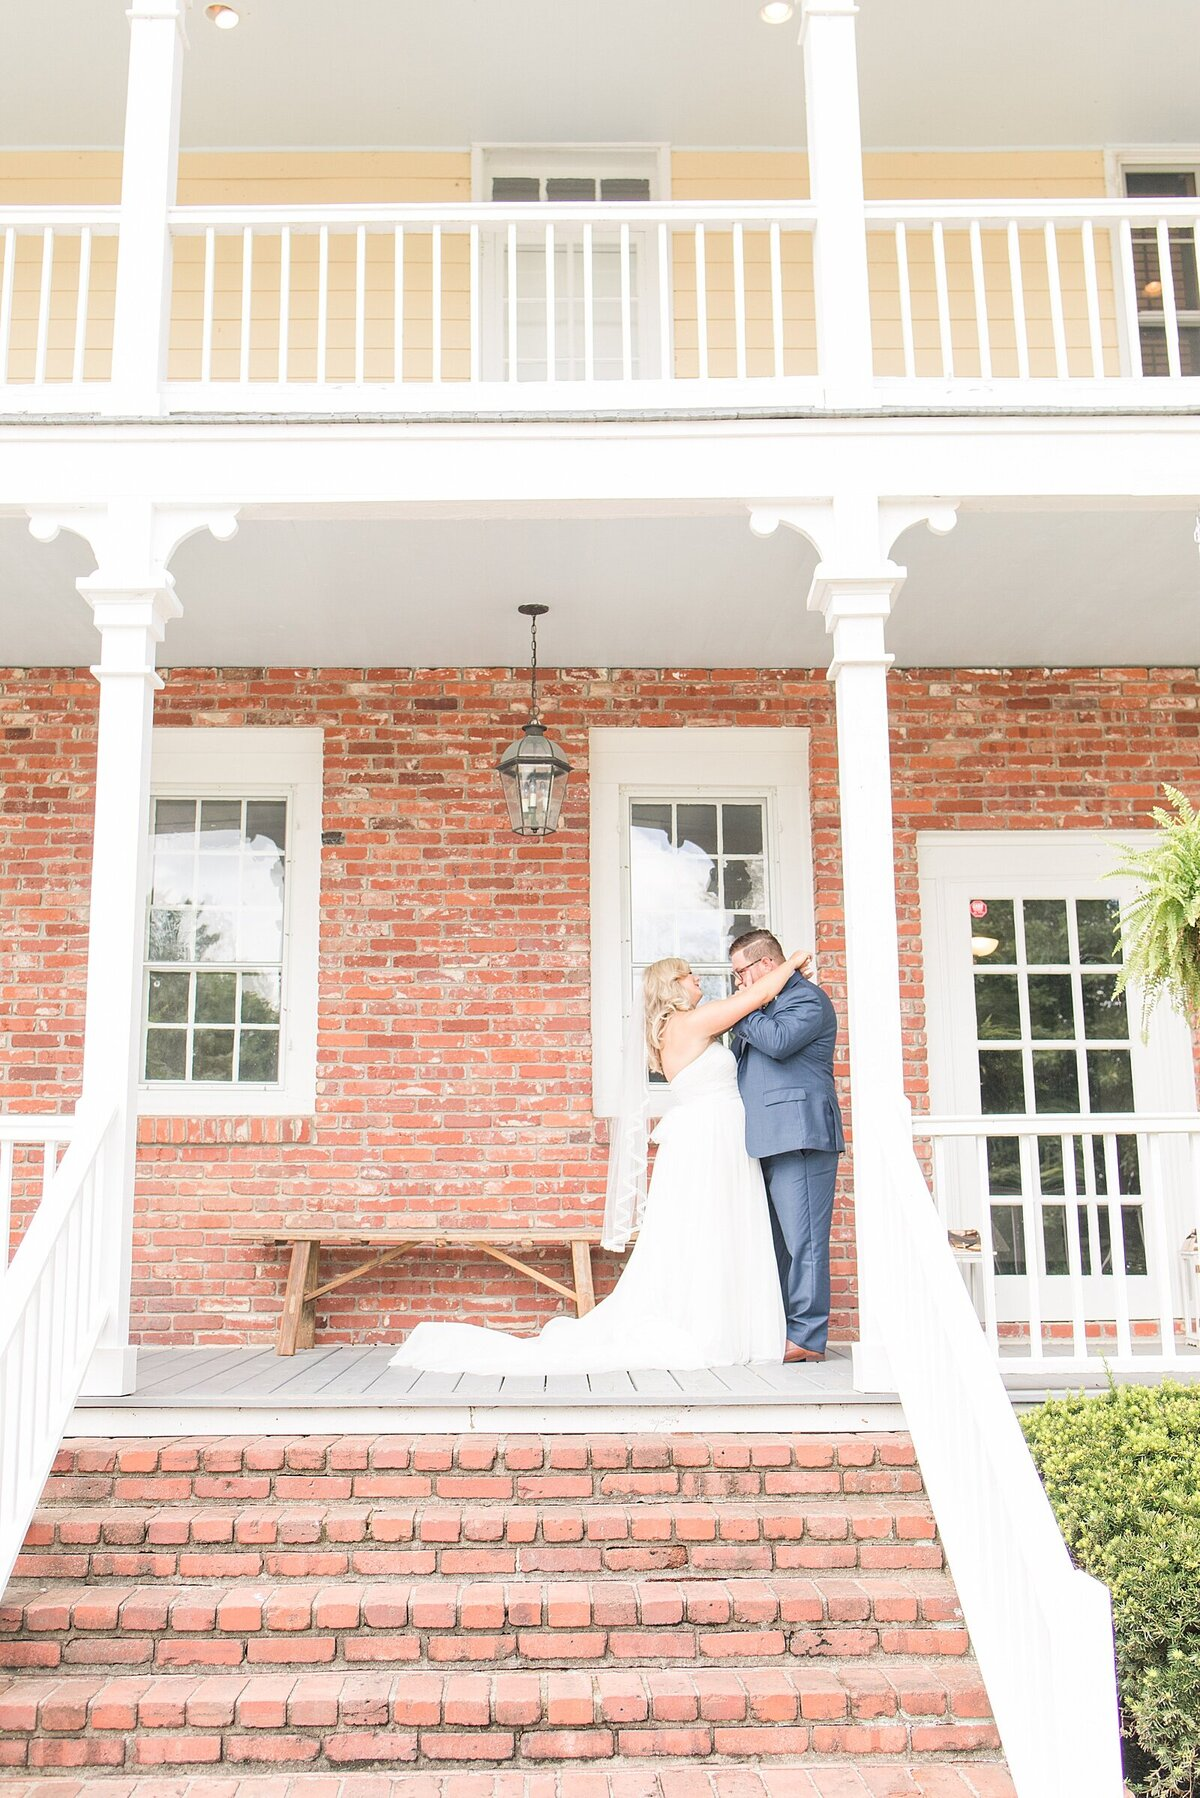 Kara Webster Photography | Mac & Maggie | Bradshaw-Duncan House Louisville, KY Wedding Photographer_0027